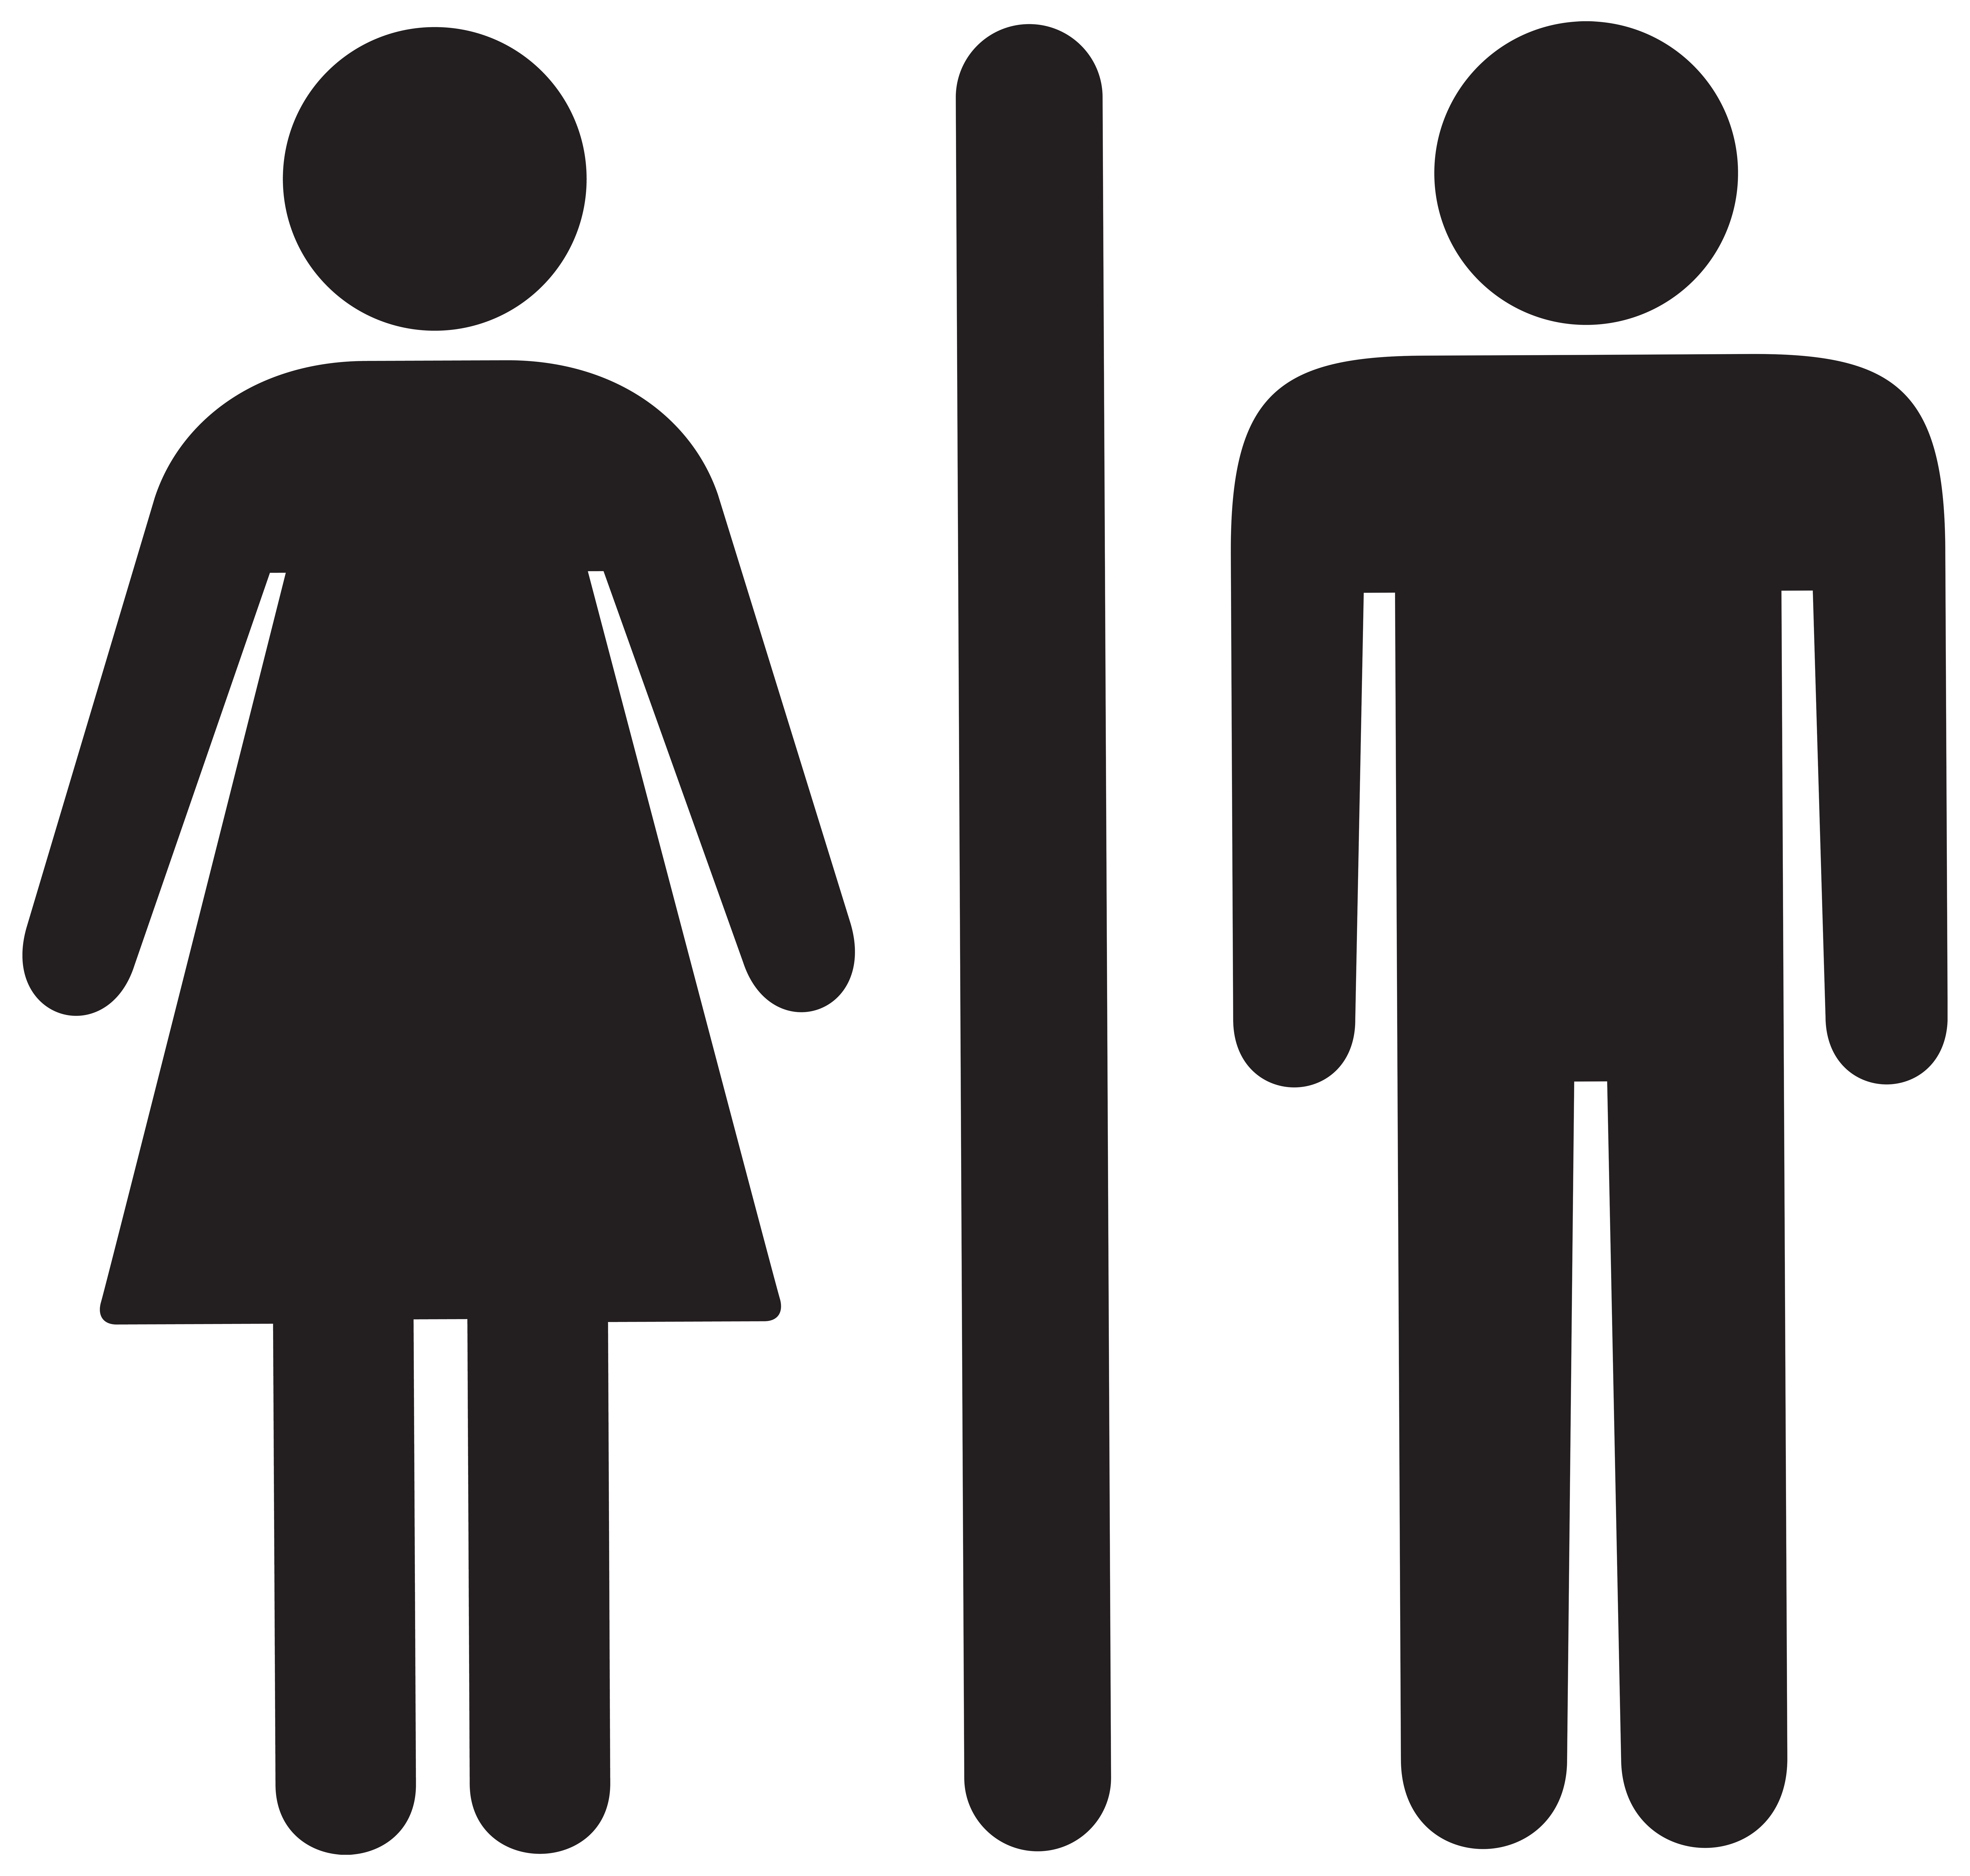 Male clipart transparent. Woman man sign png